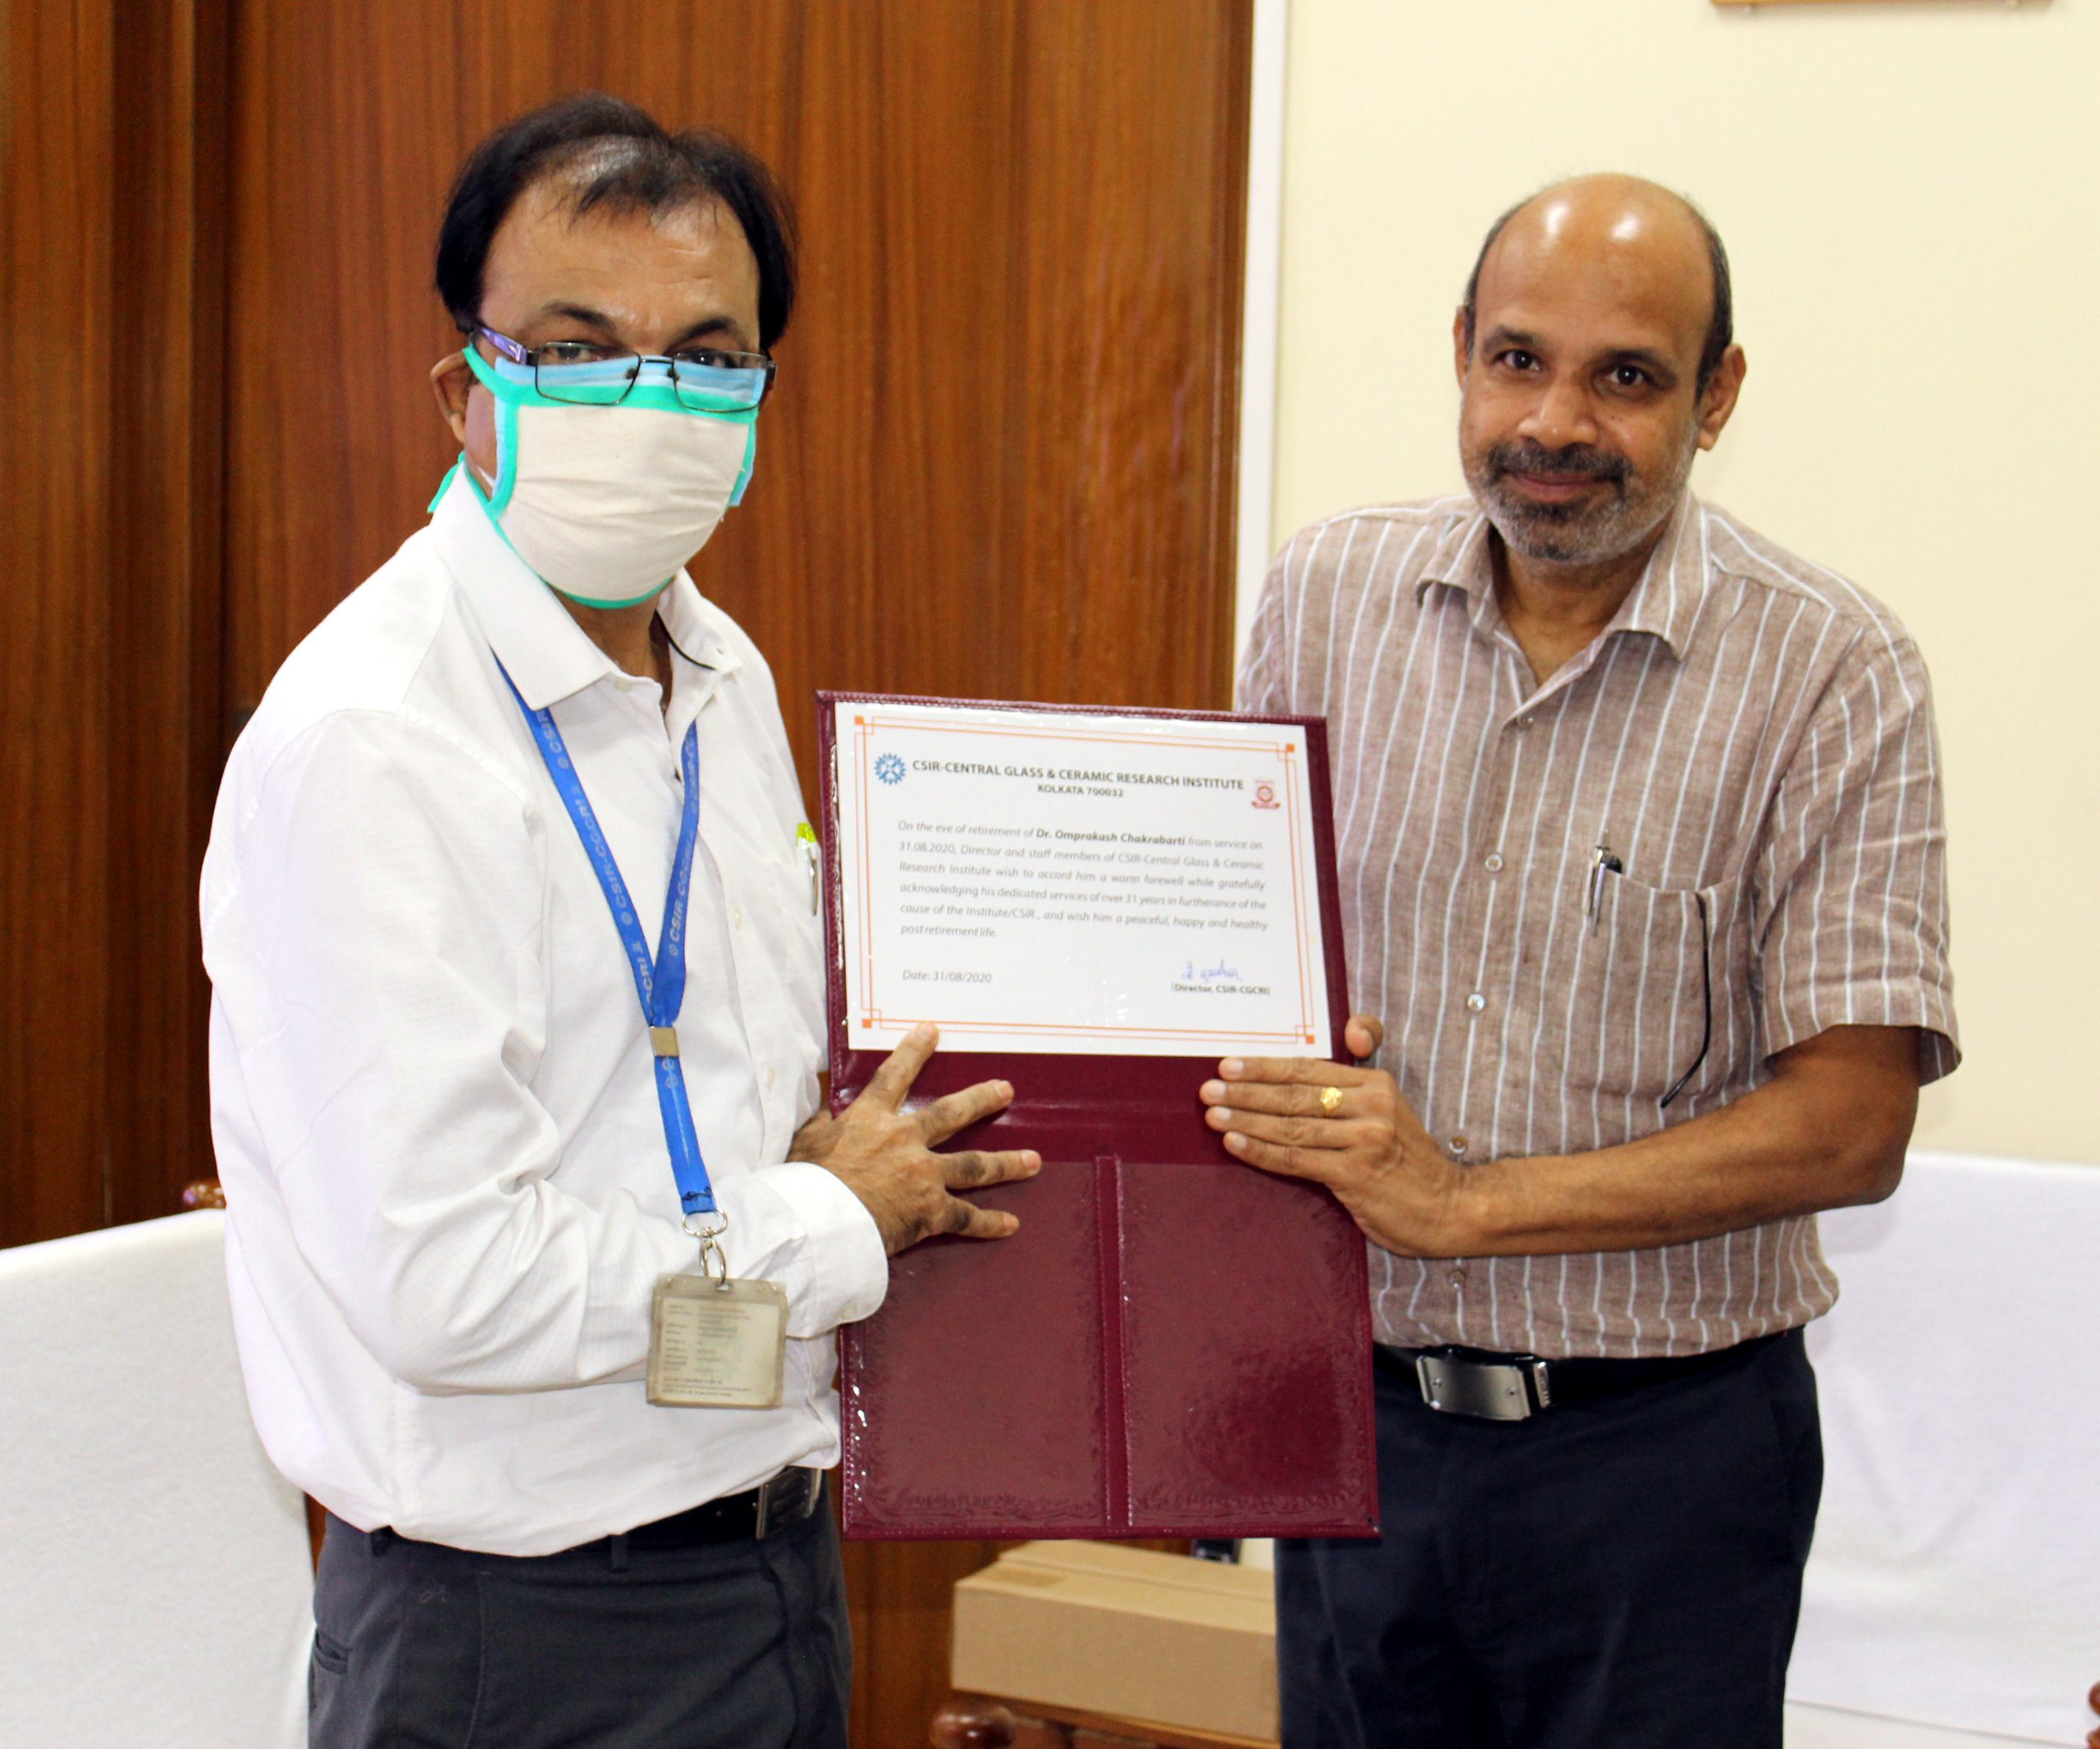 Director presenting the Certificate to Dr Omprakash Chakrabarti, Chief Scientist upon superannuation on 31.08.2020